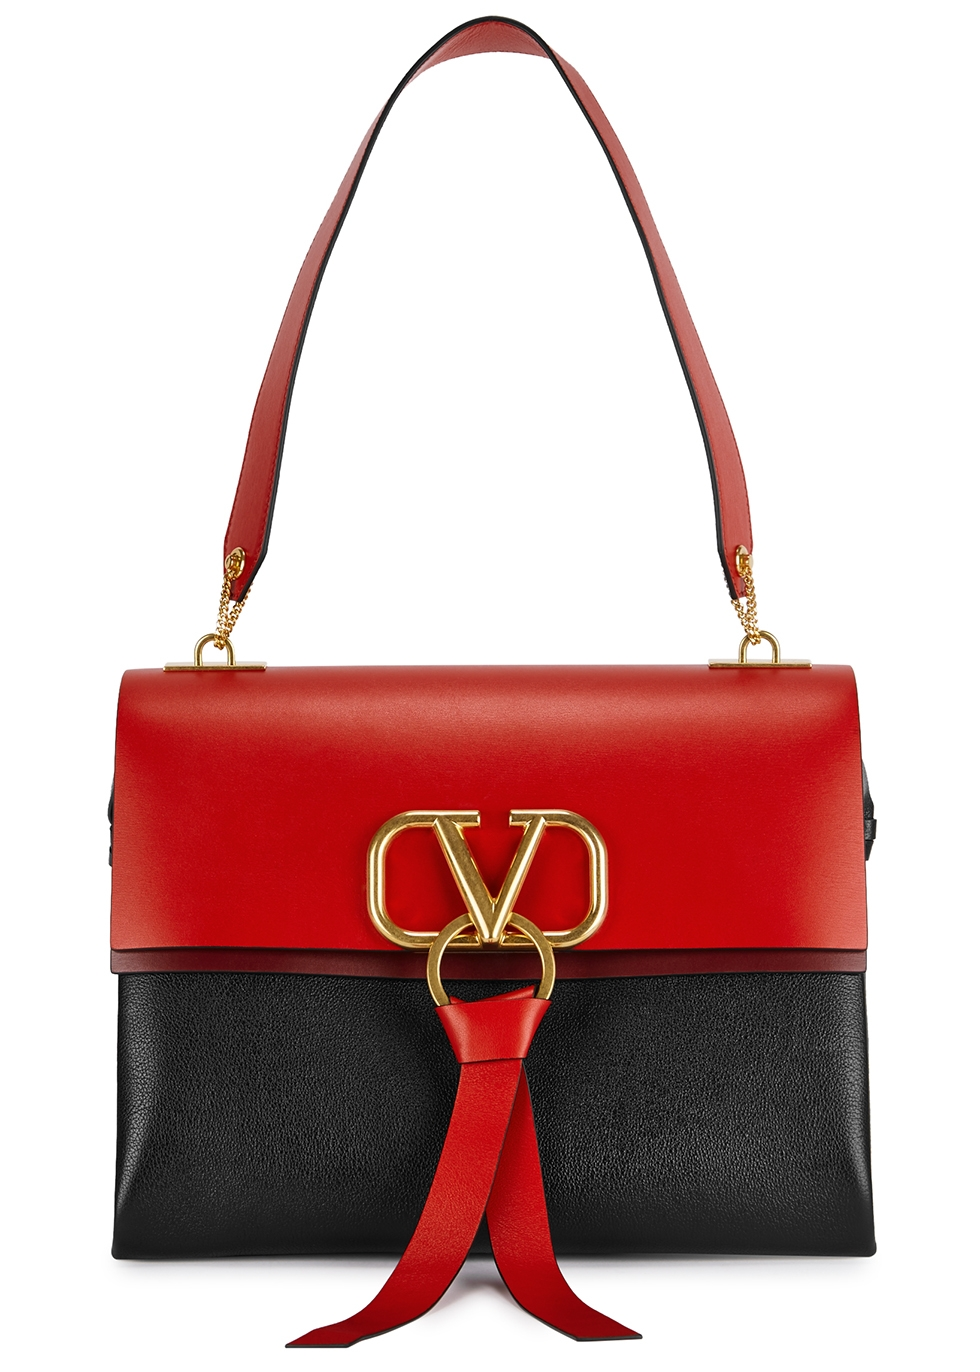 VRing medium leather top handle bag - Valentino Garavani